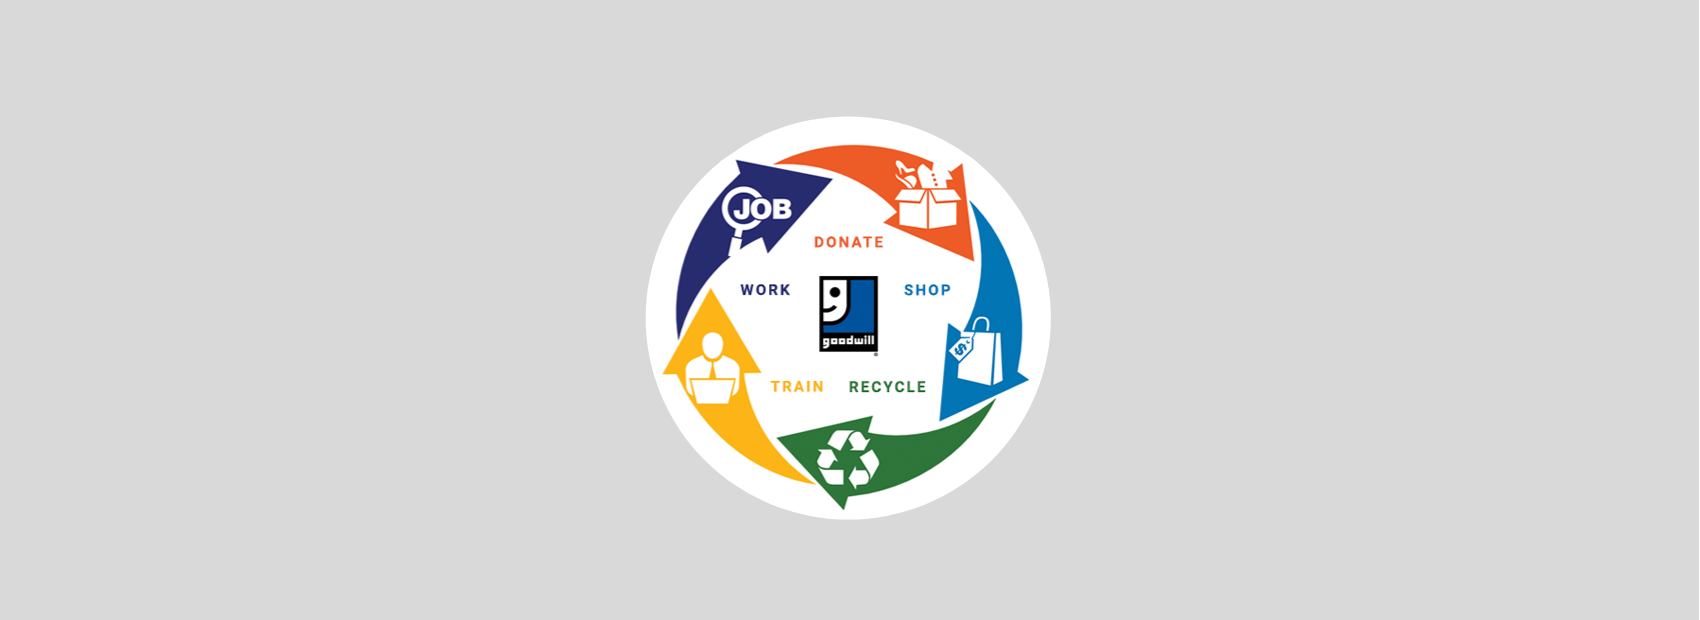 Learn about Goodwill's Cycle of Success